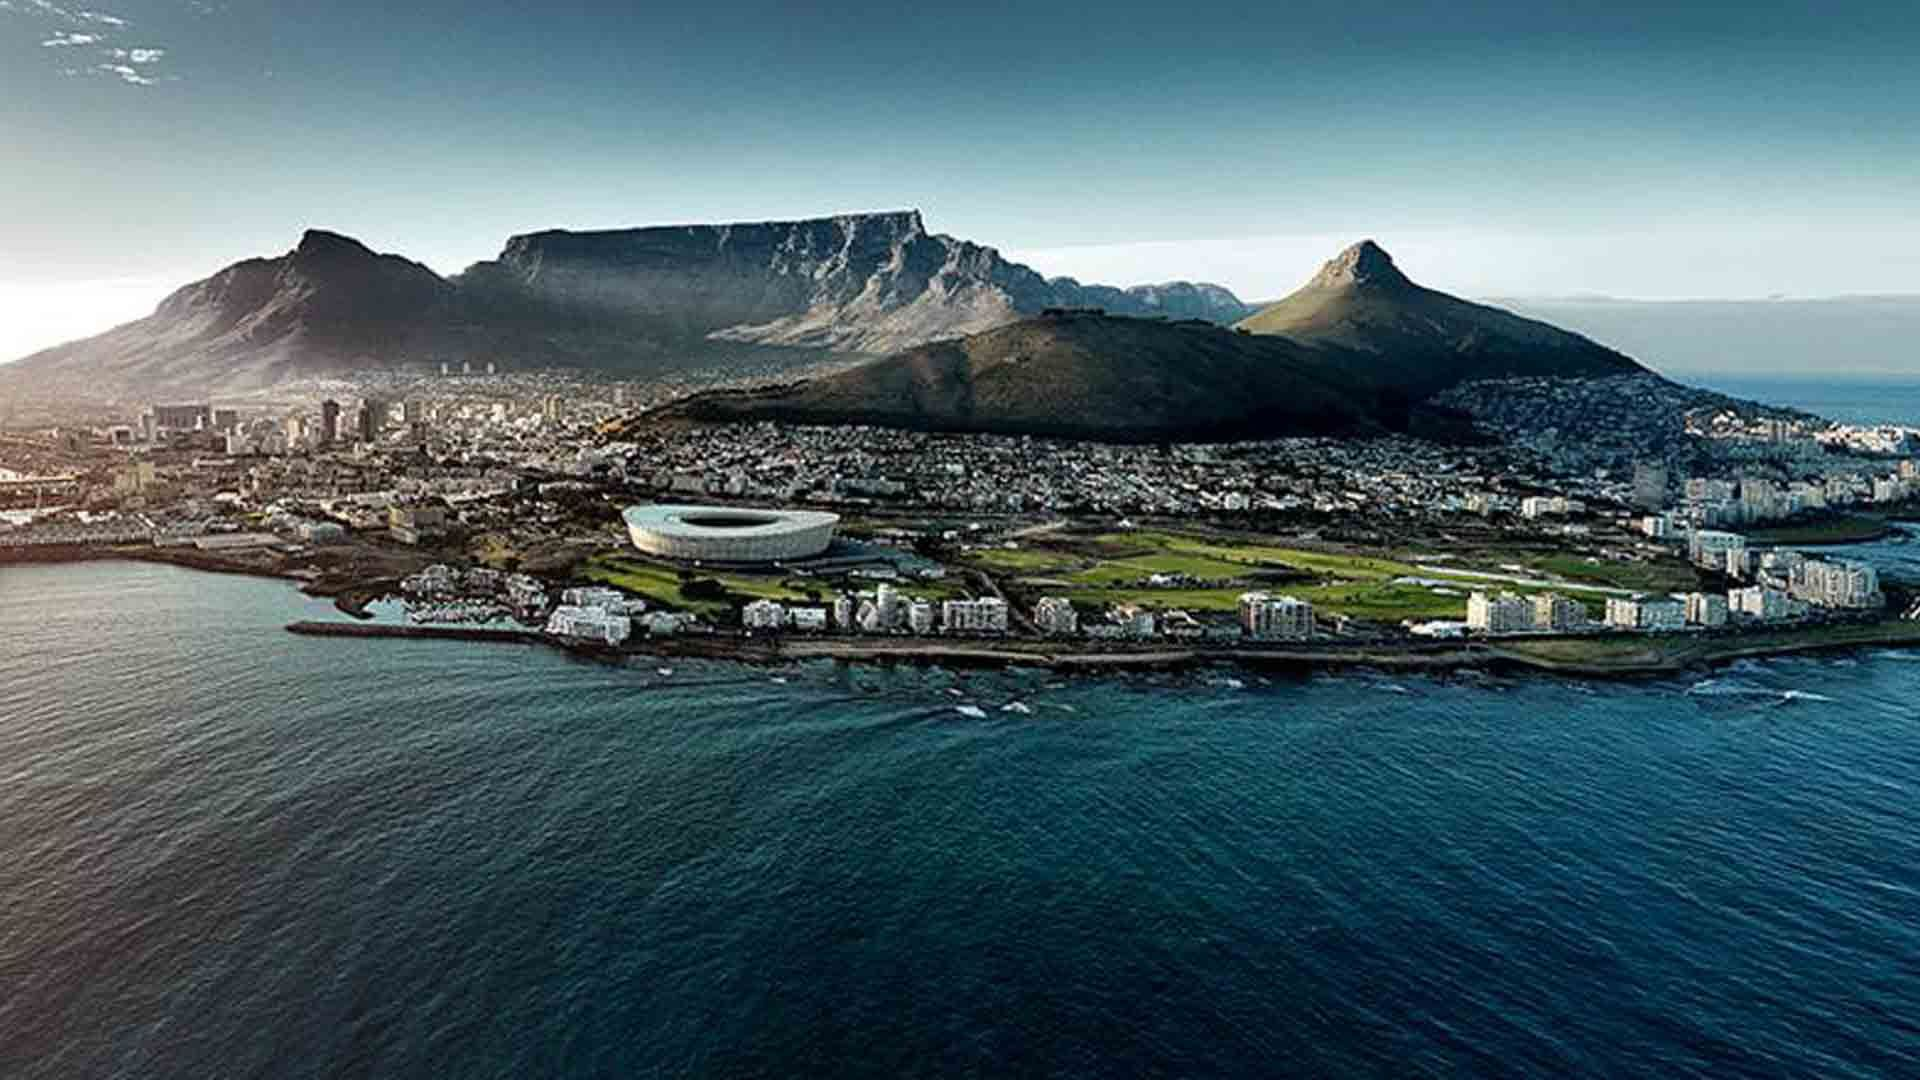 Table mountain hd wallpaper google search my favourite - Table mountain wallpaper ...